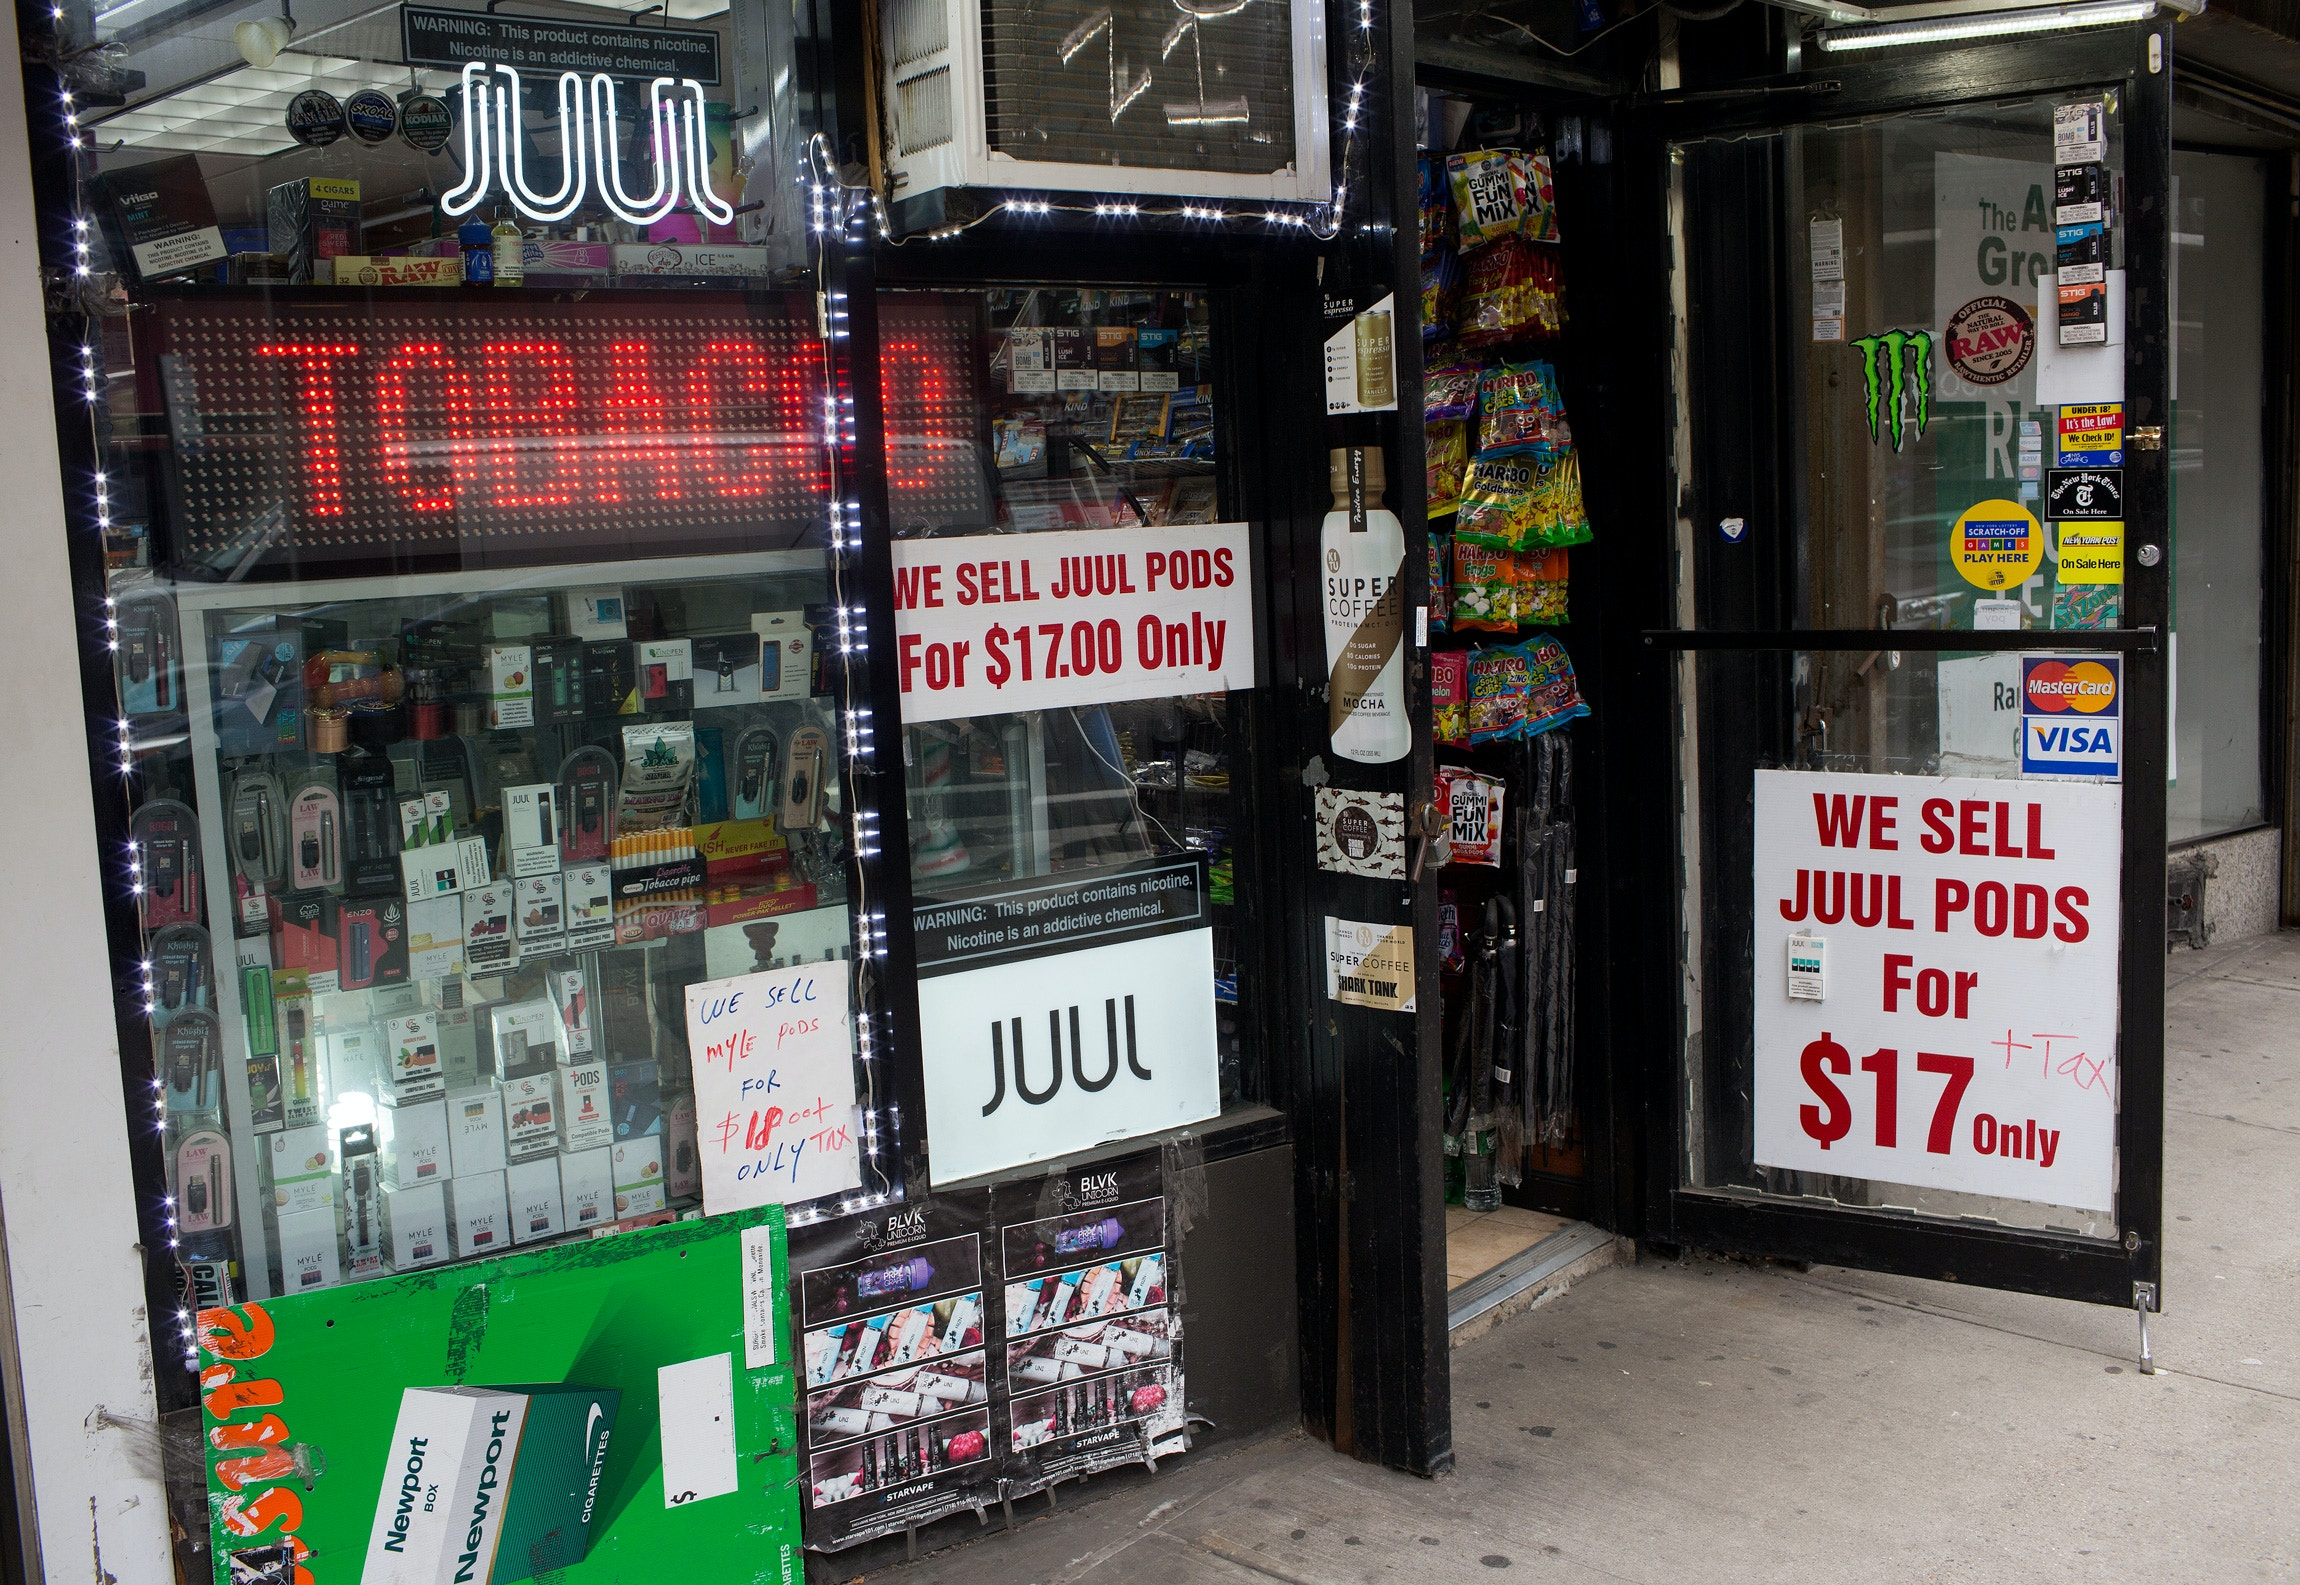 NEW YORK, NEW YORK - JANUARY 27: A tobacco store advertises and sells Juul tobacco products as vaping remains popular despite health warnings, on January 27, 2020 in midtown Manhattan, New York City. (Photo by Andrew Lichtenstein/Corbis via Getty Images)